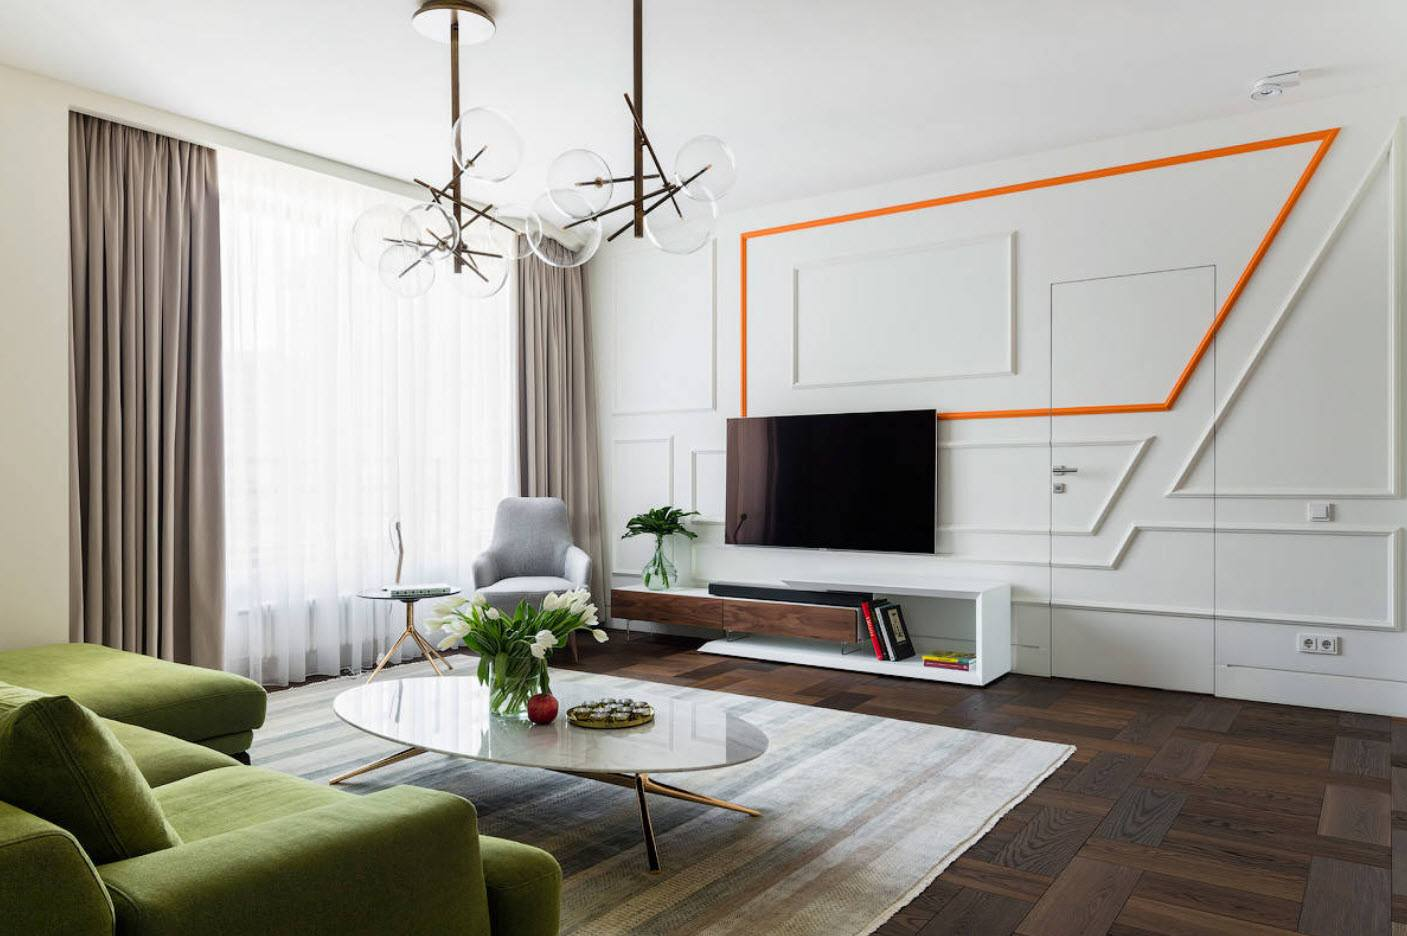 White Living Room: Different Style Interiors with Photos. Orange and green infusion to successfully designed room